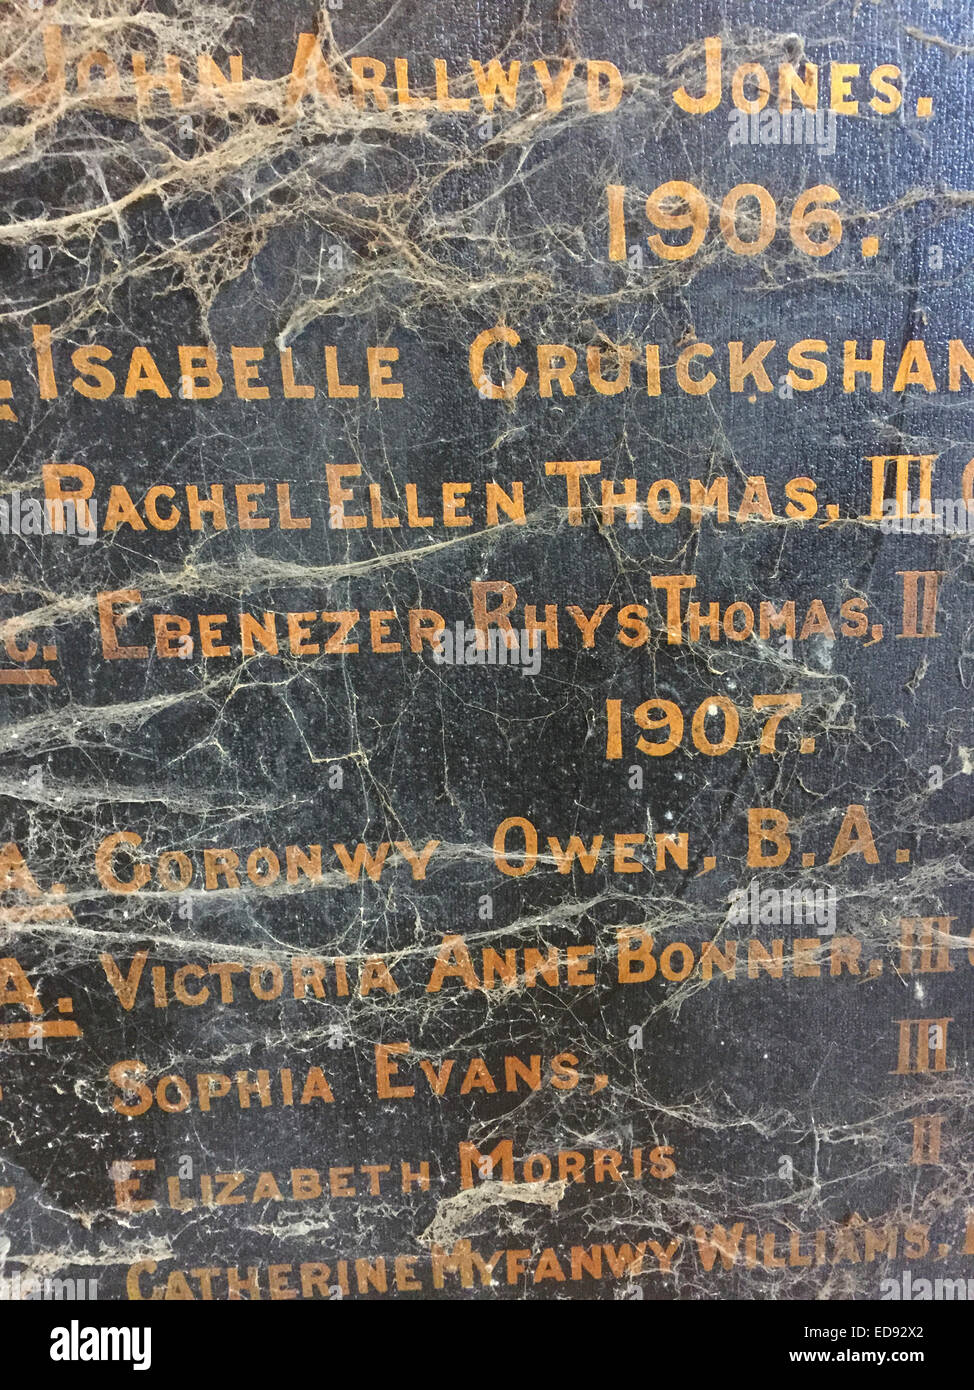 Dusty cobwebs covering names of people on an old 'honours board'  dated  1906 and 1907 from a grammar school, - Stock Image